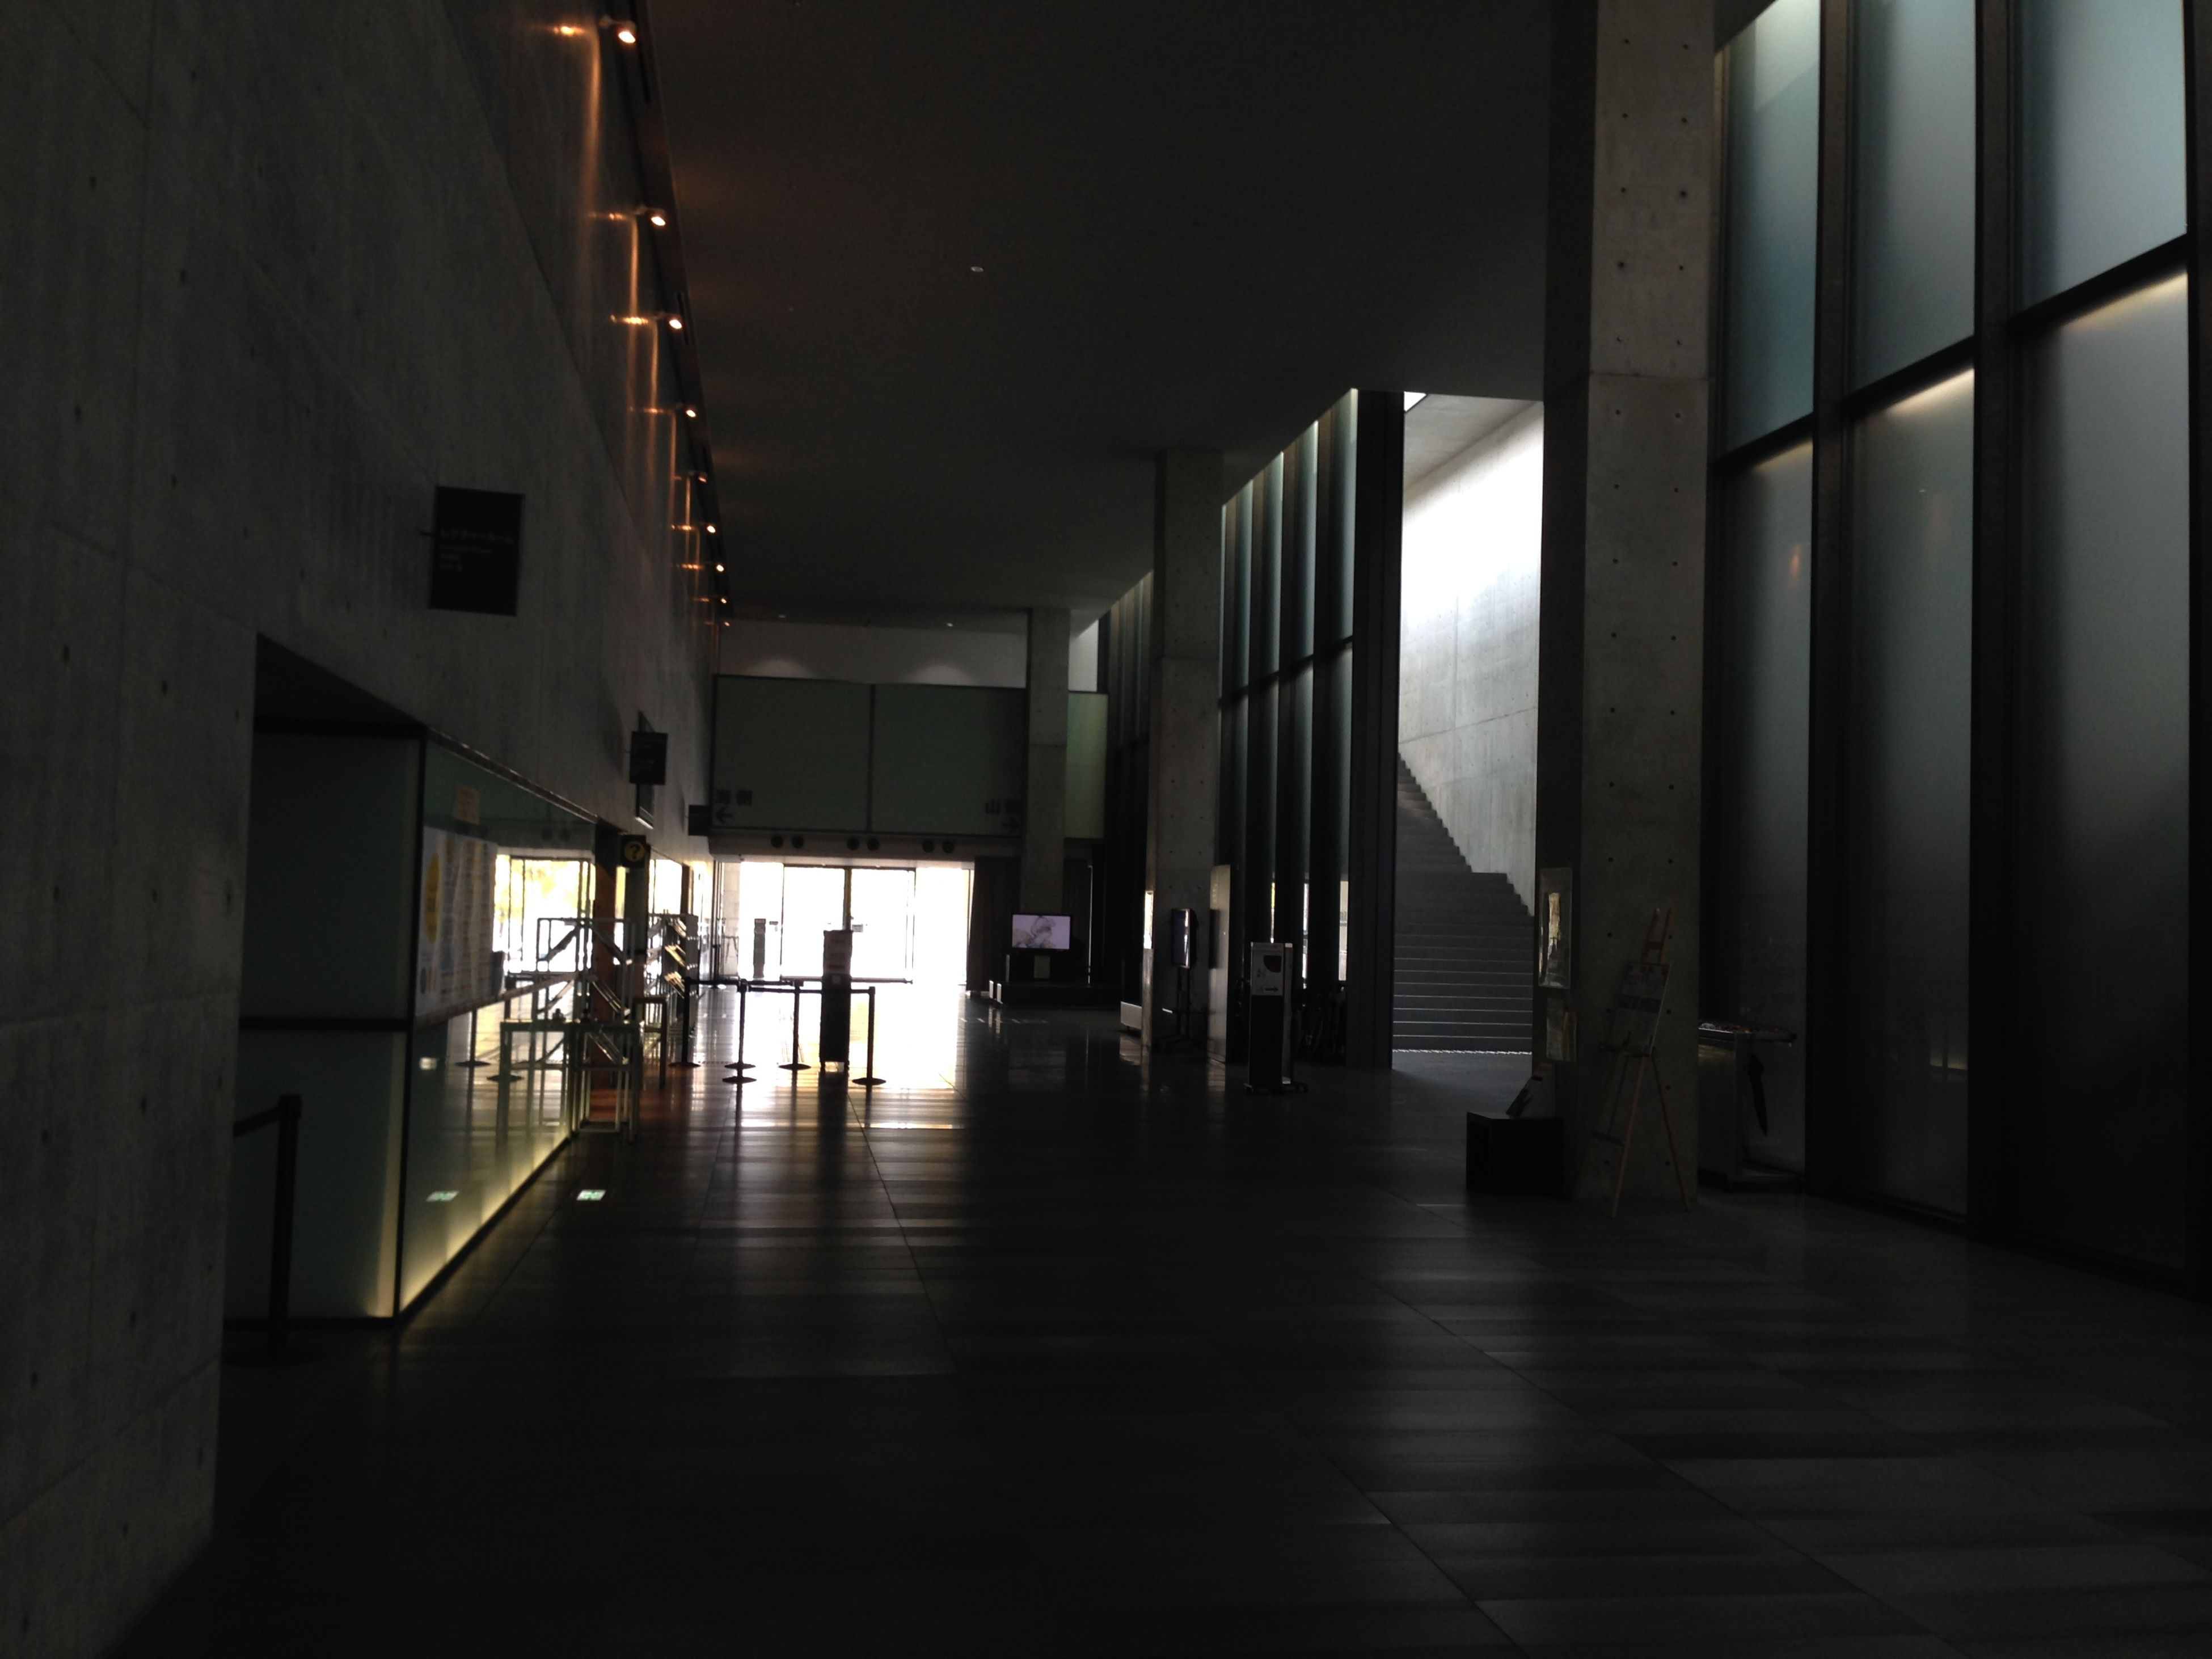 architecture, built structure, indoors, architectural column, corridor, column, the way forward, empty, flooring, building, building exterior, illuminated, diminishing perspective, modern, ceiling, long, city, support, no people, pillar